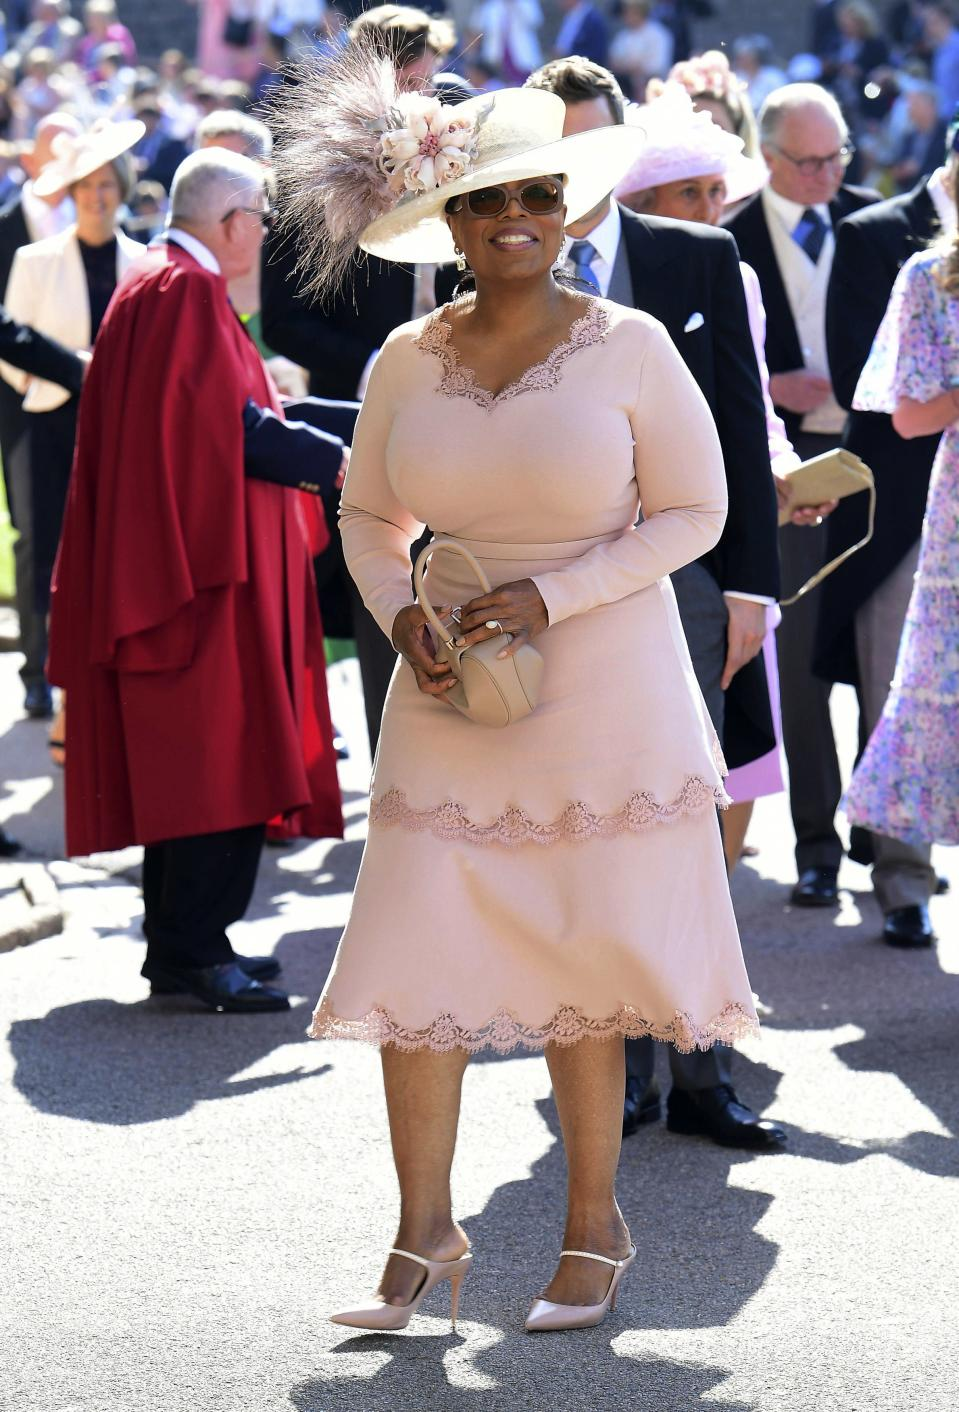 Oprah Winfrey is all smiles as she arrives at St George's Chapel at Windsor Castle.